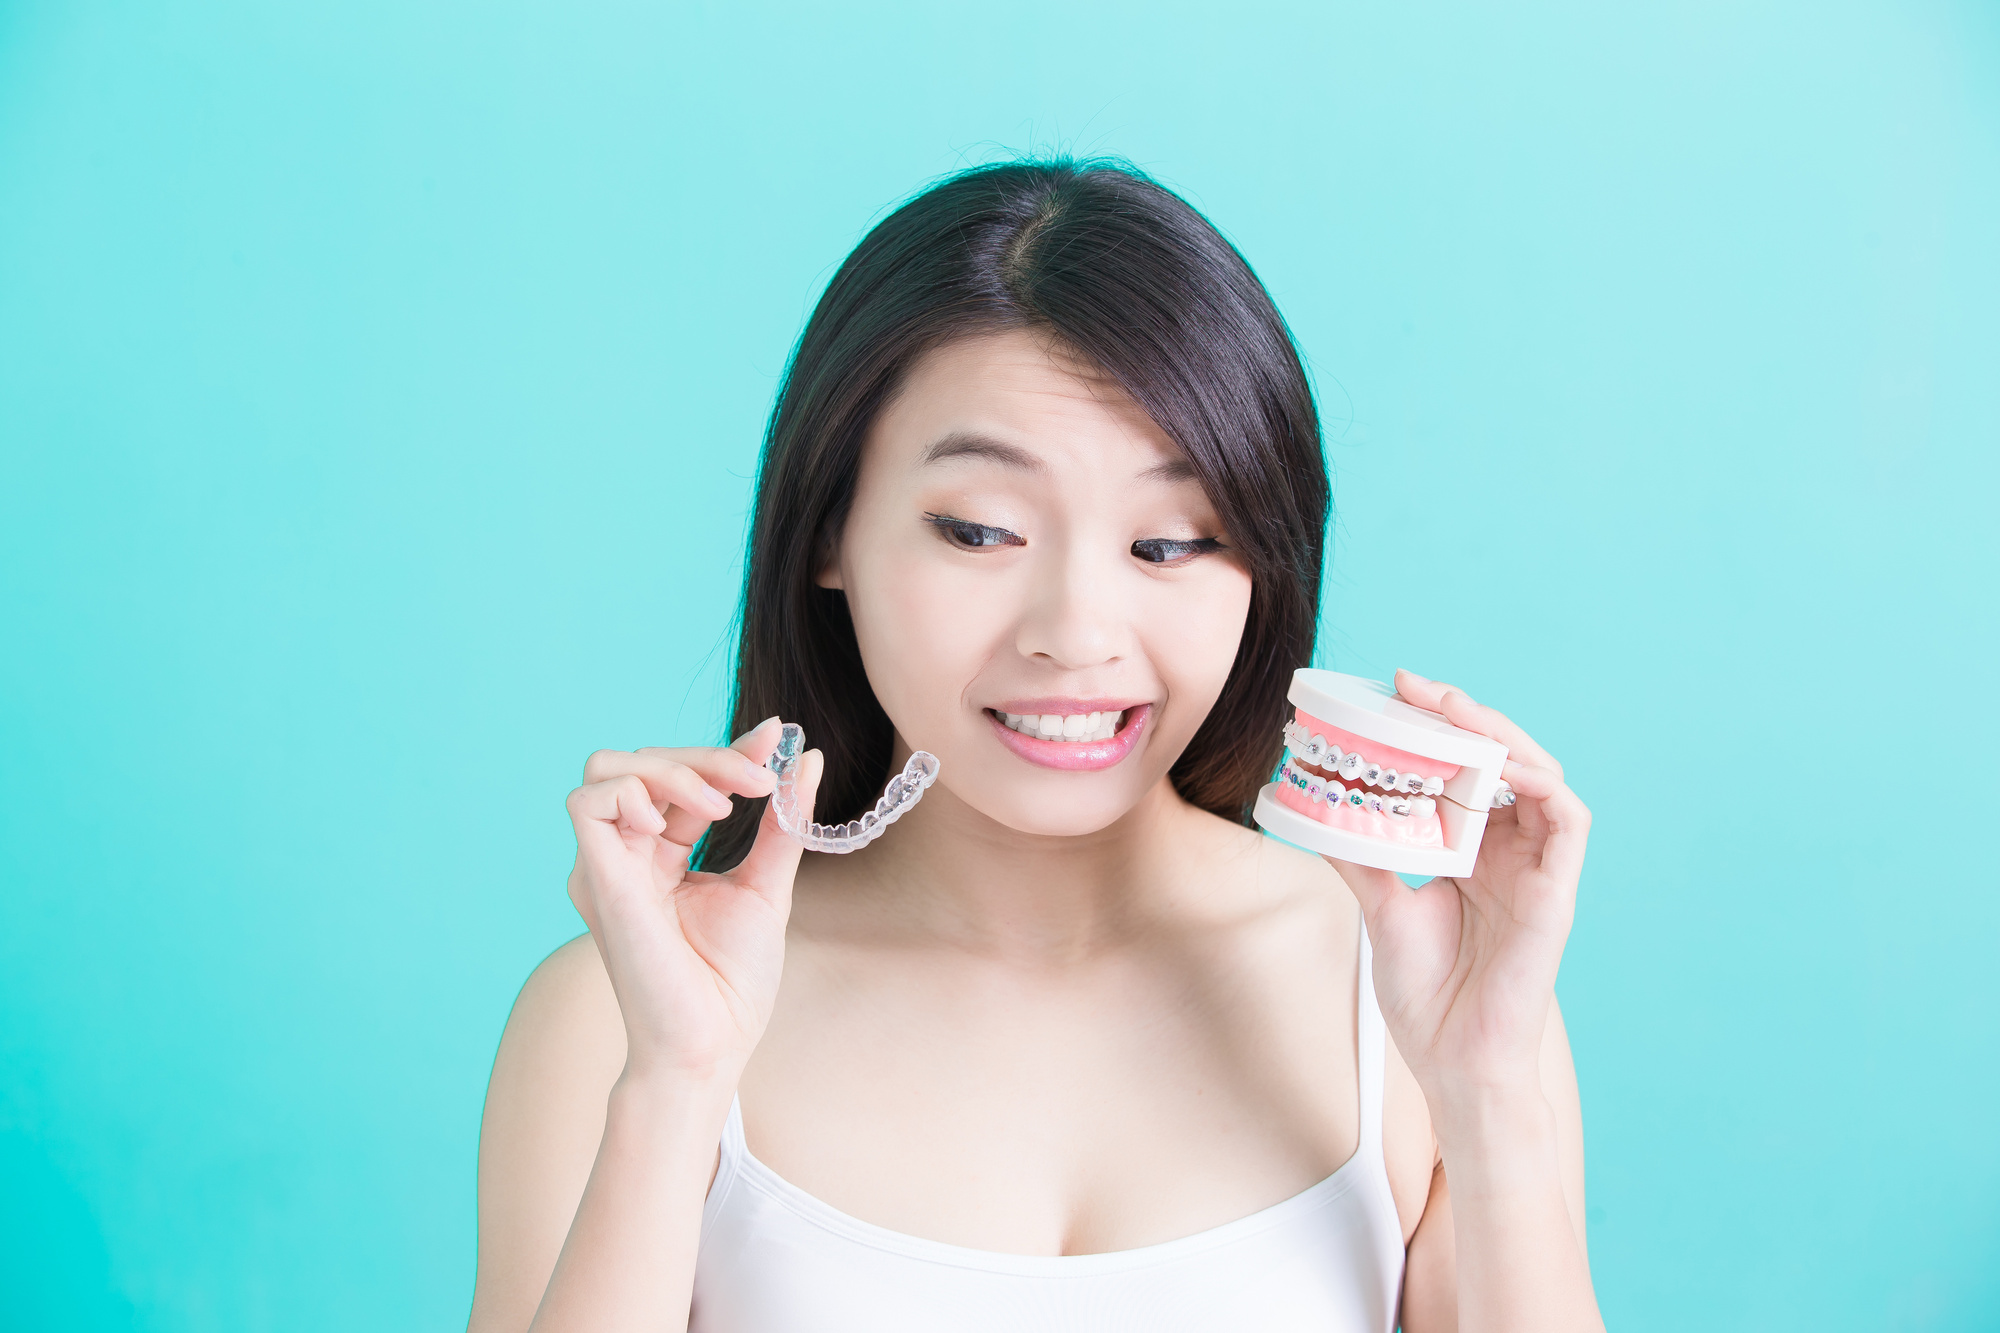 Ceramic Braces vs Invisalign: What You Need to Know